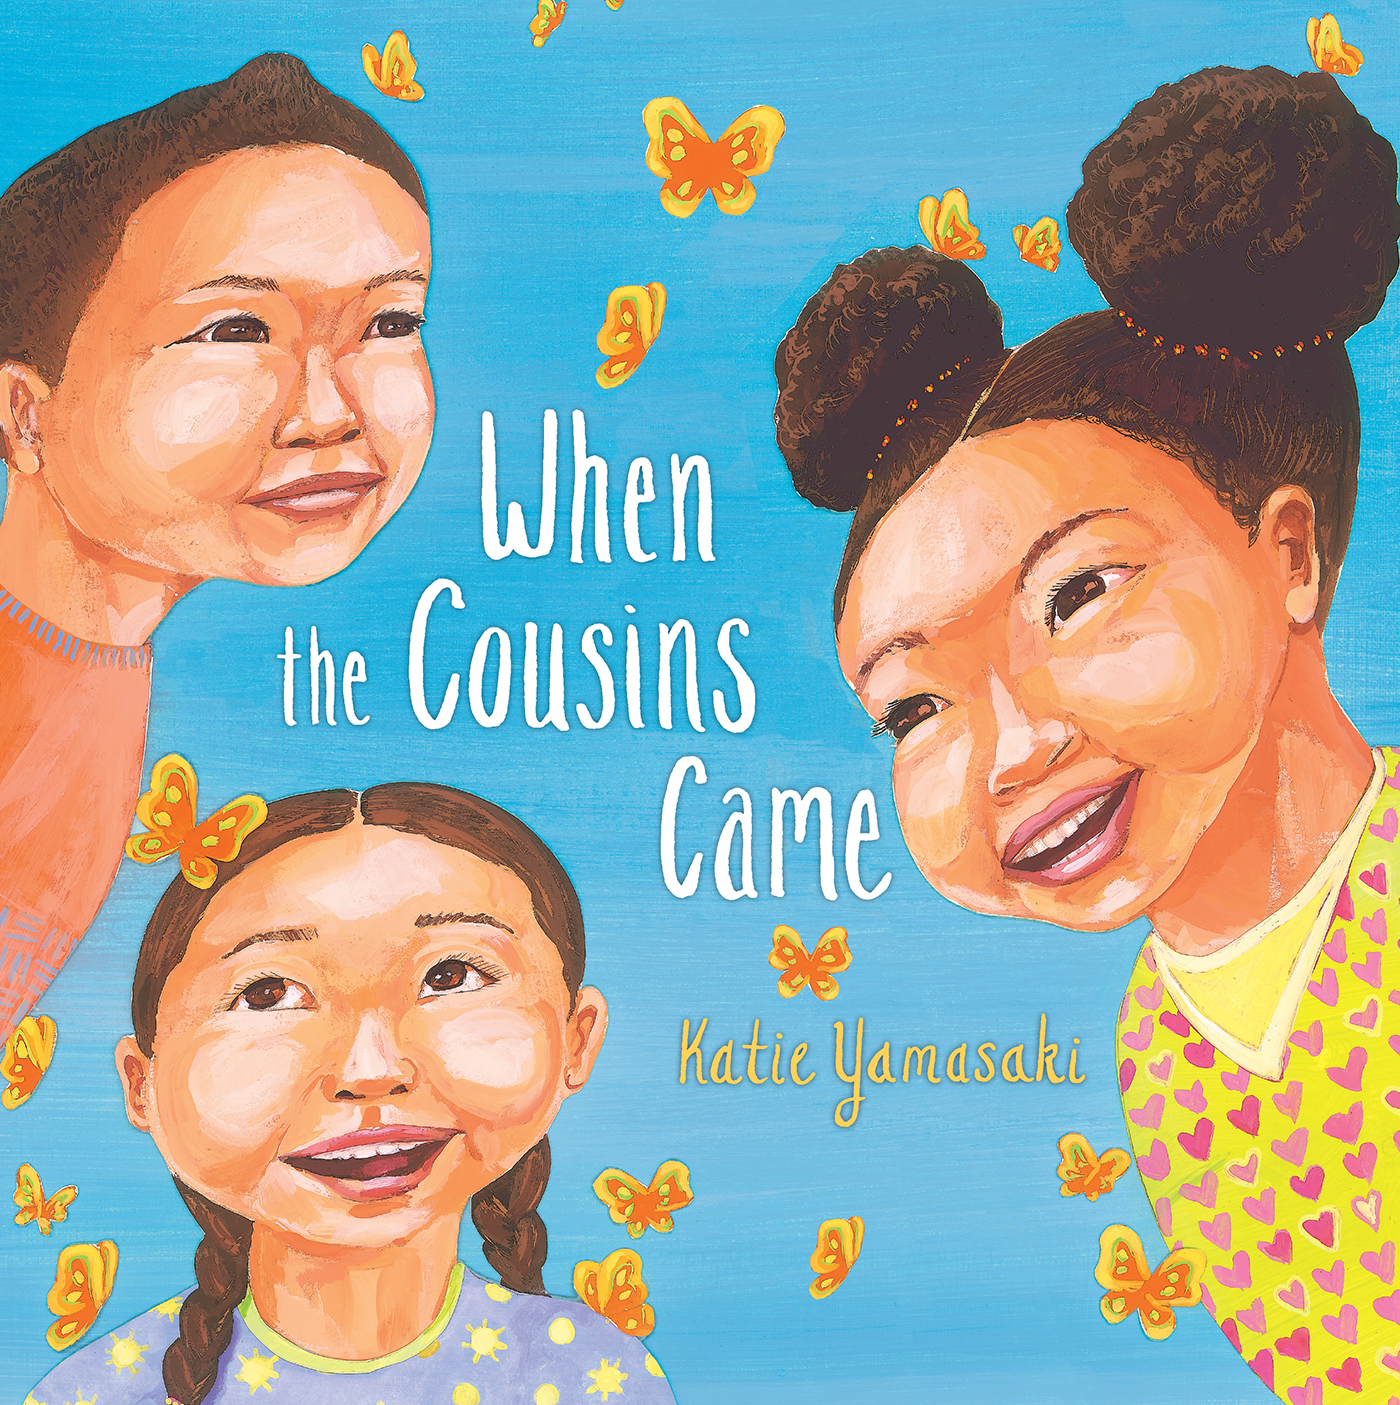 Sunday Story Time with Katie Yamasaki (Author & Illustrator of When the Cousins Came)